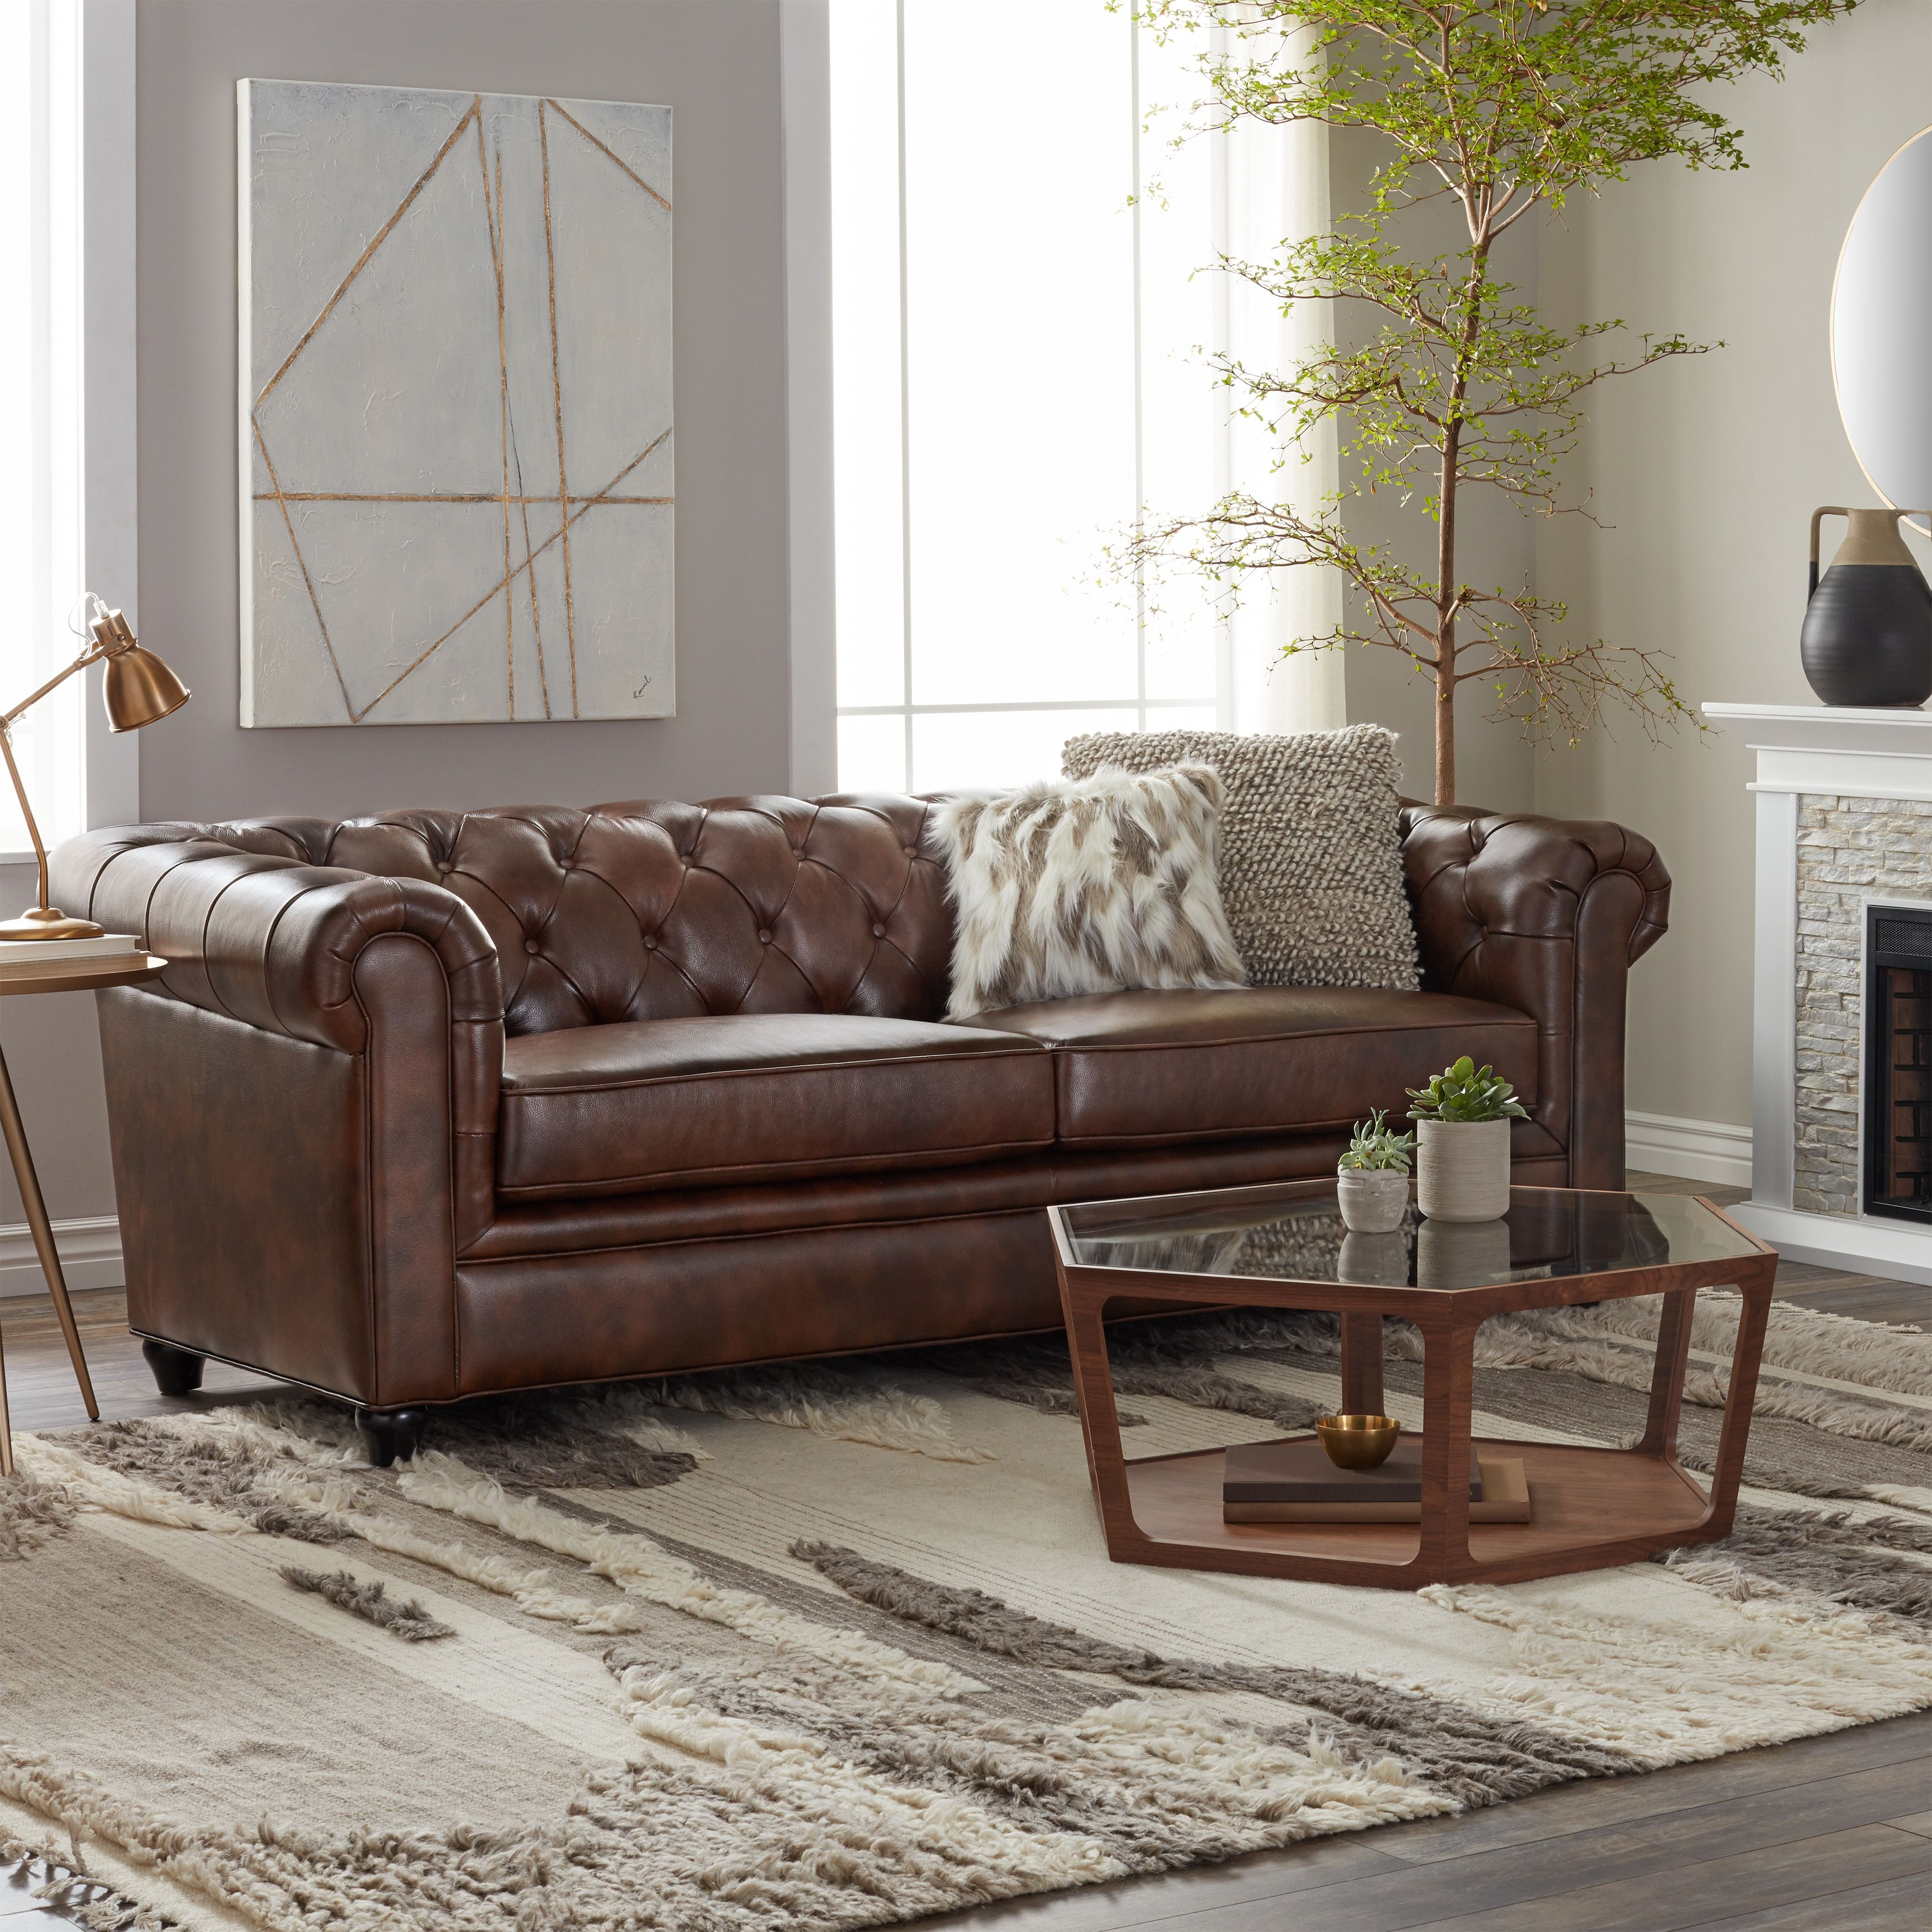 Abbyson Tuscan Top Grain Leather Chesterfield Sofa Chesterfield Sofa Best Leather Sofa Leather Chesterfield